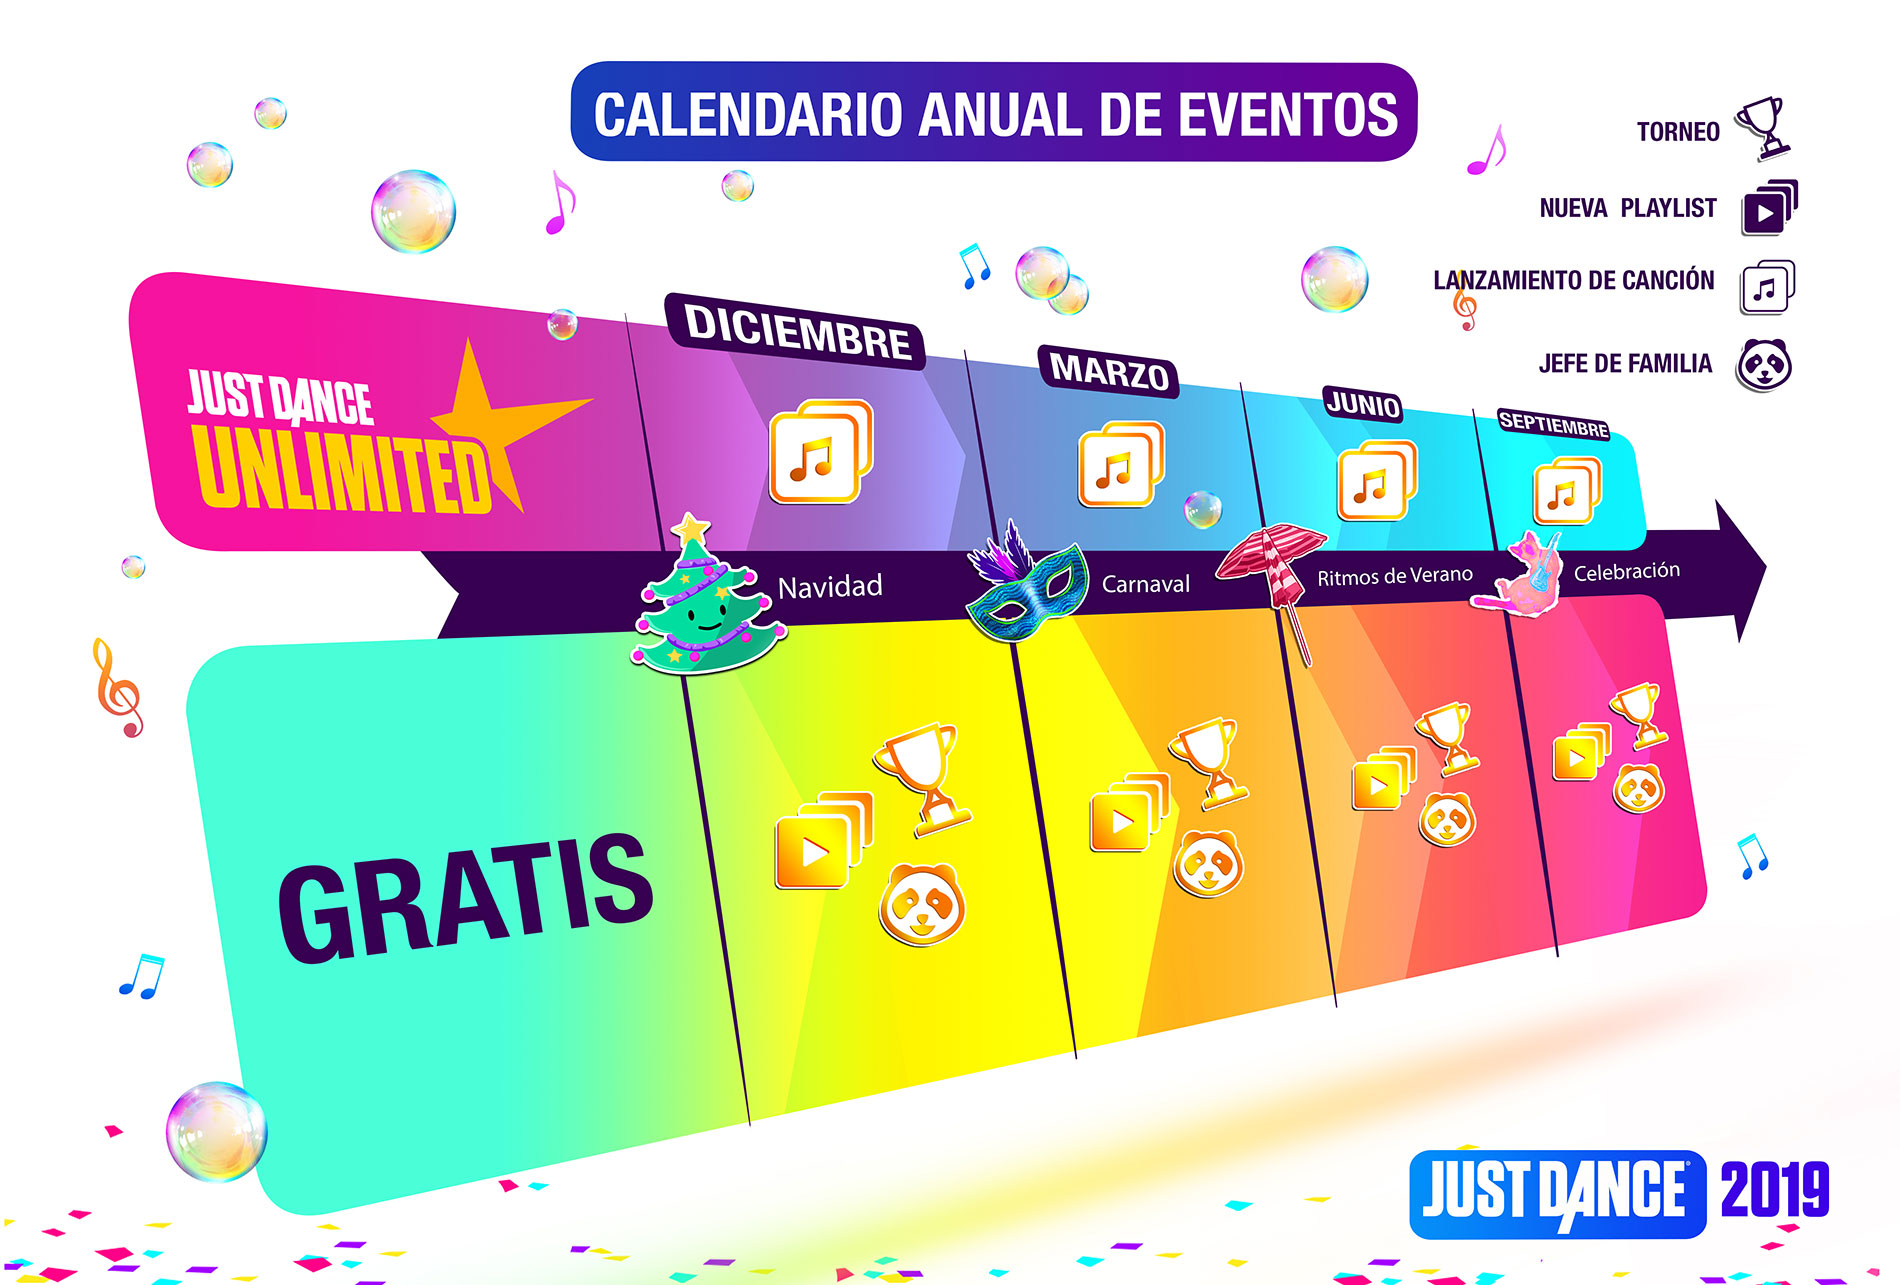 JD19_POST_LAUNCH_YEARLY_CALENDAR_SPA